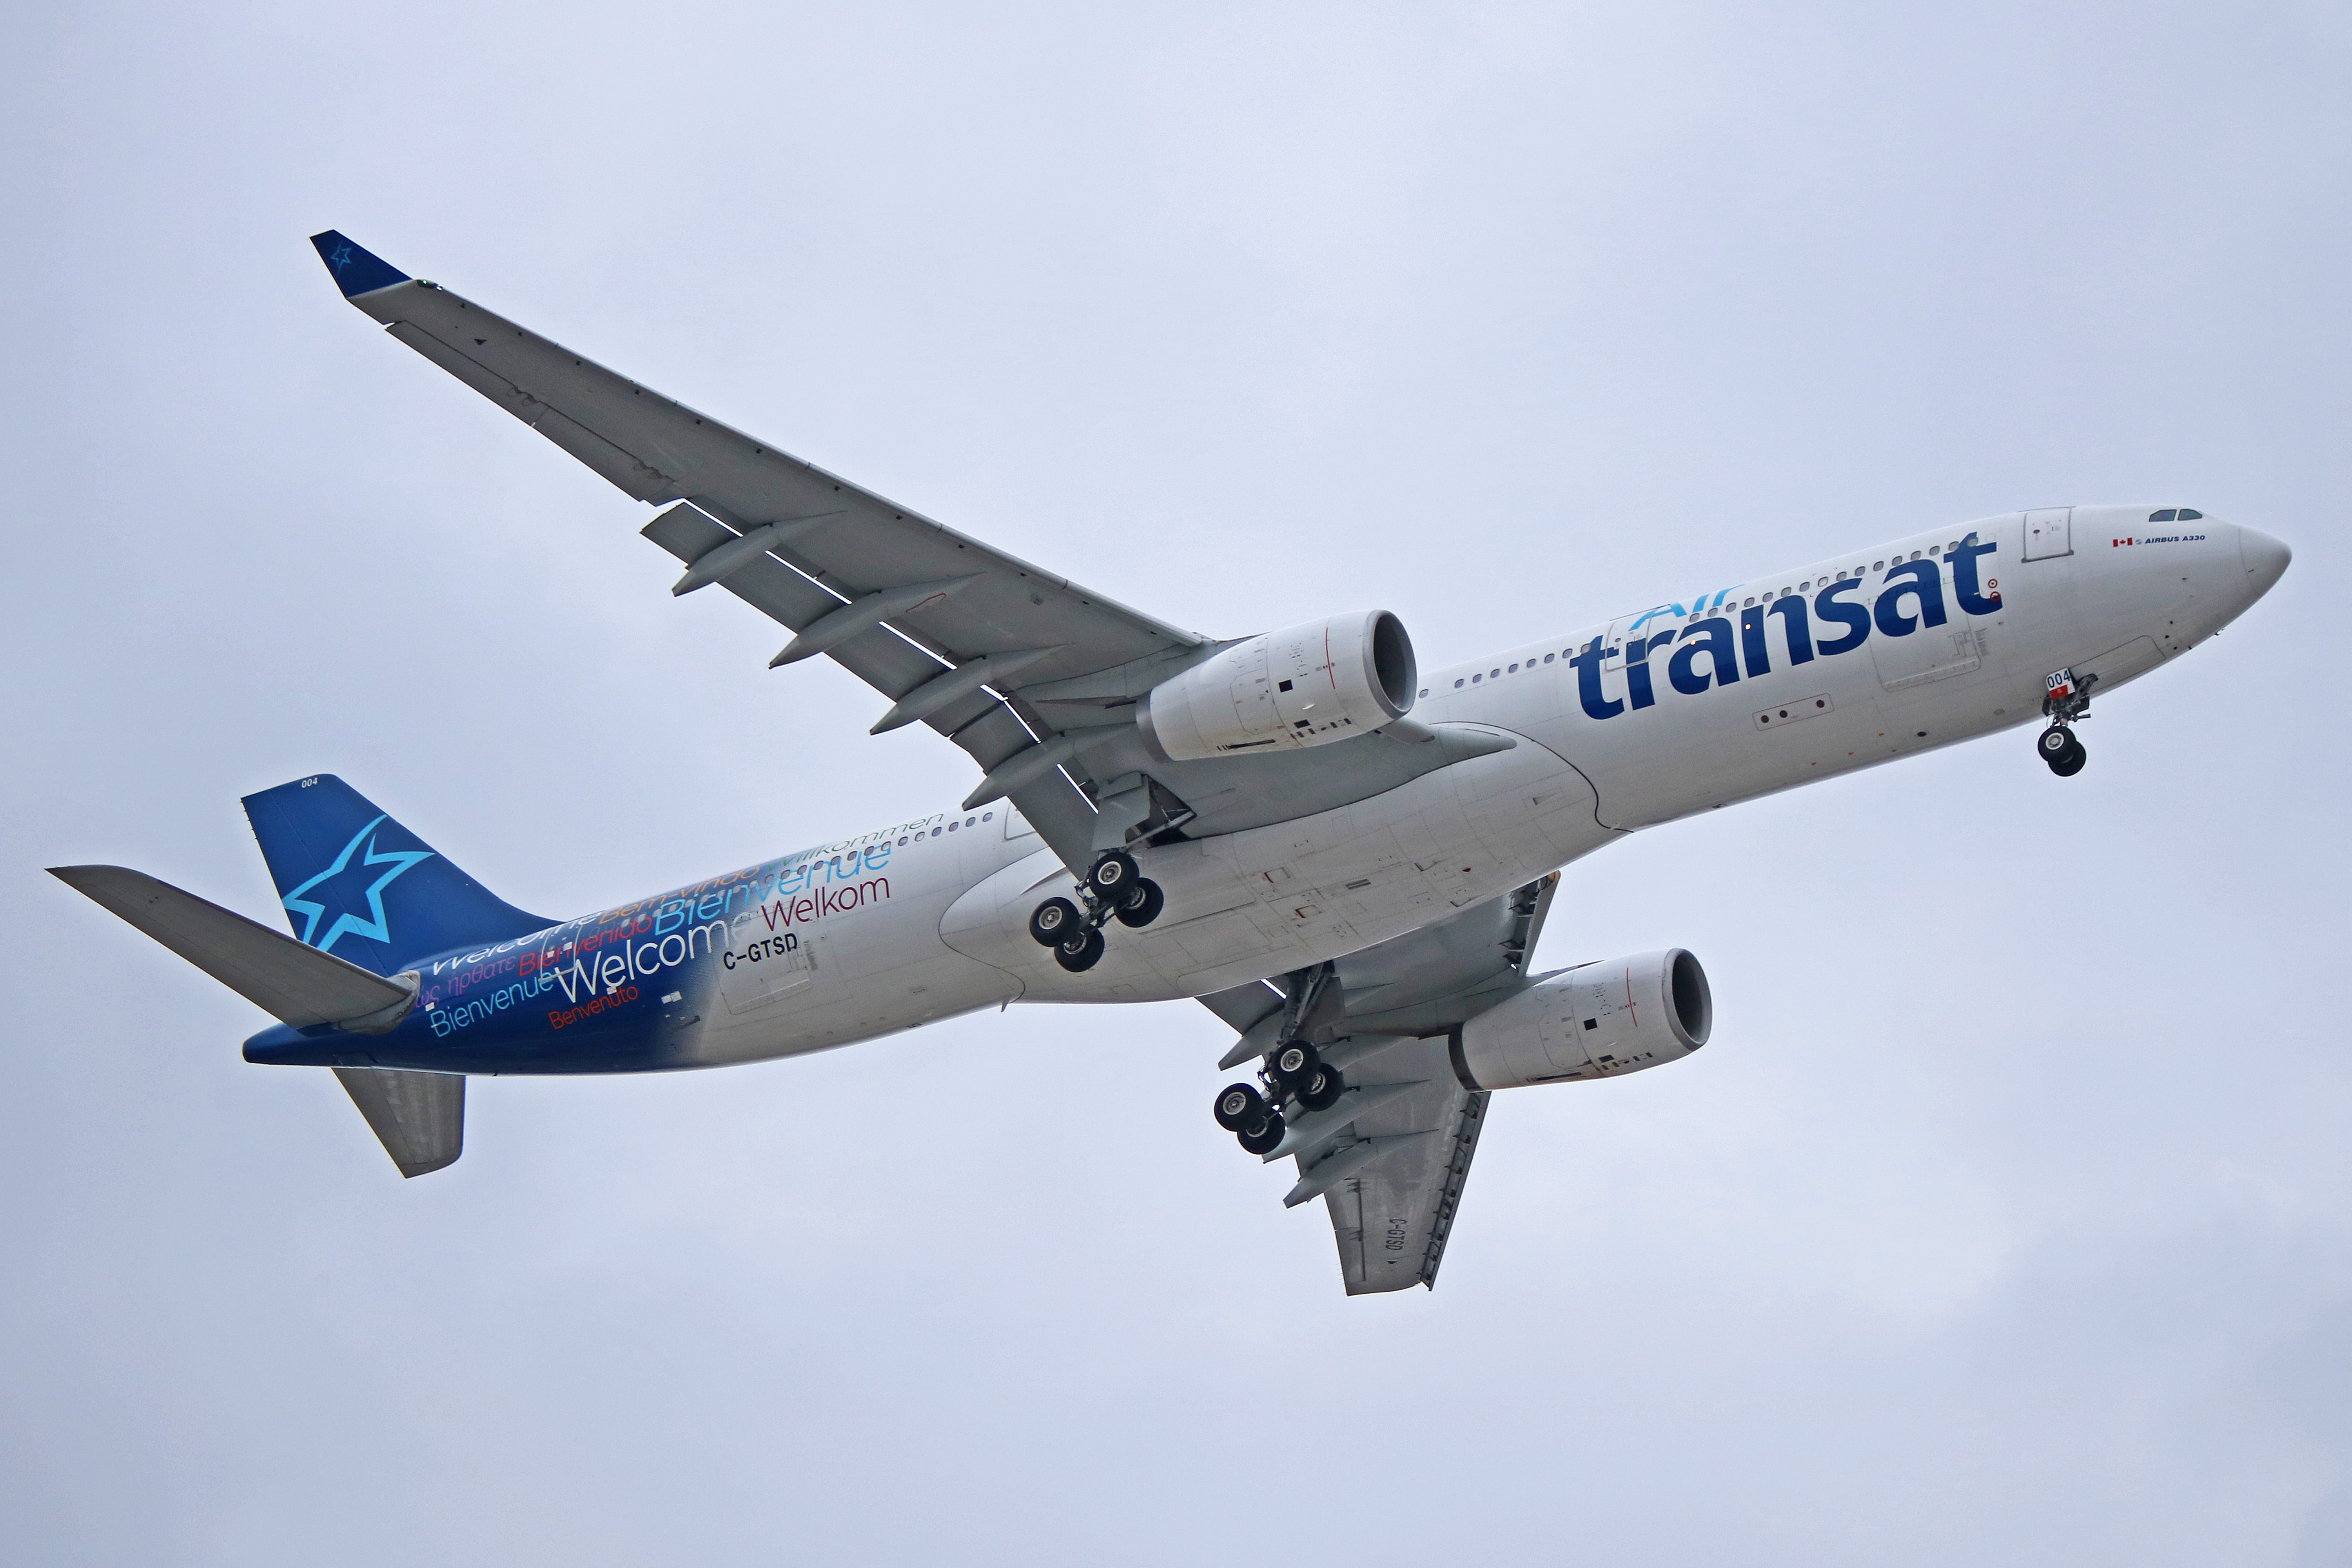 C Gtsd Air Transat Airbus A330 300 Started Life With Cathay Dragon